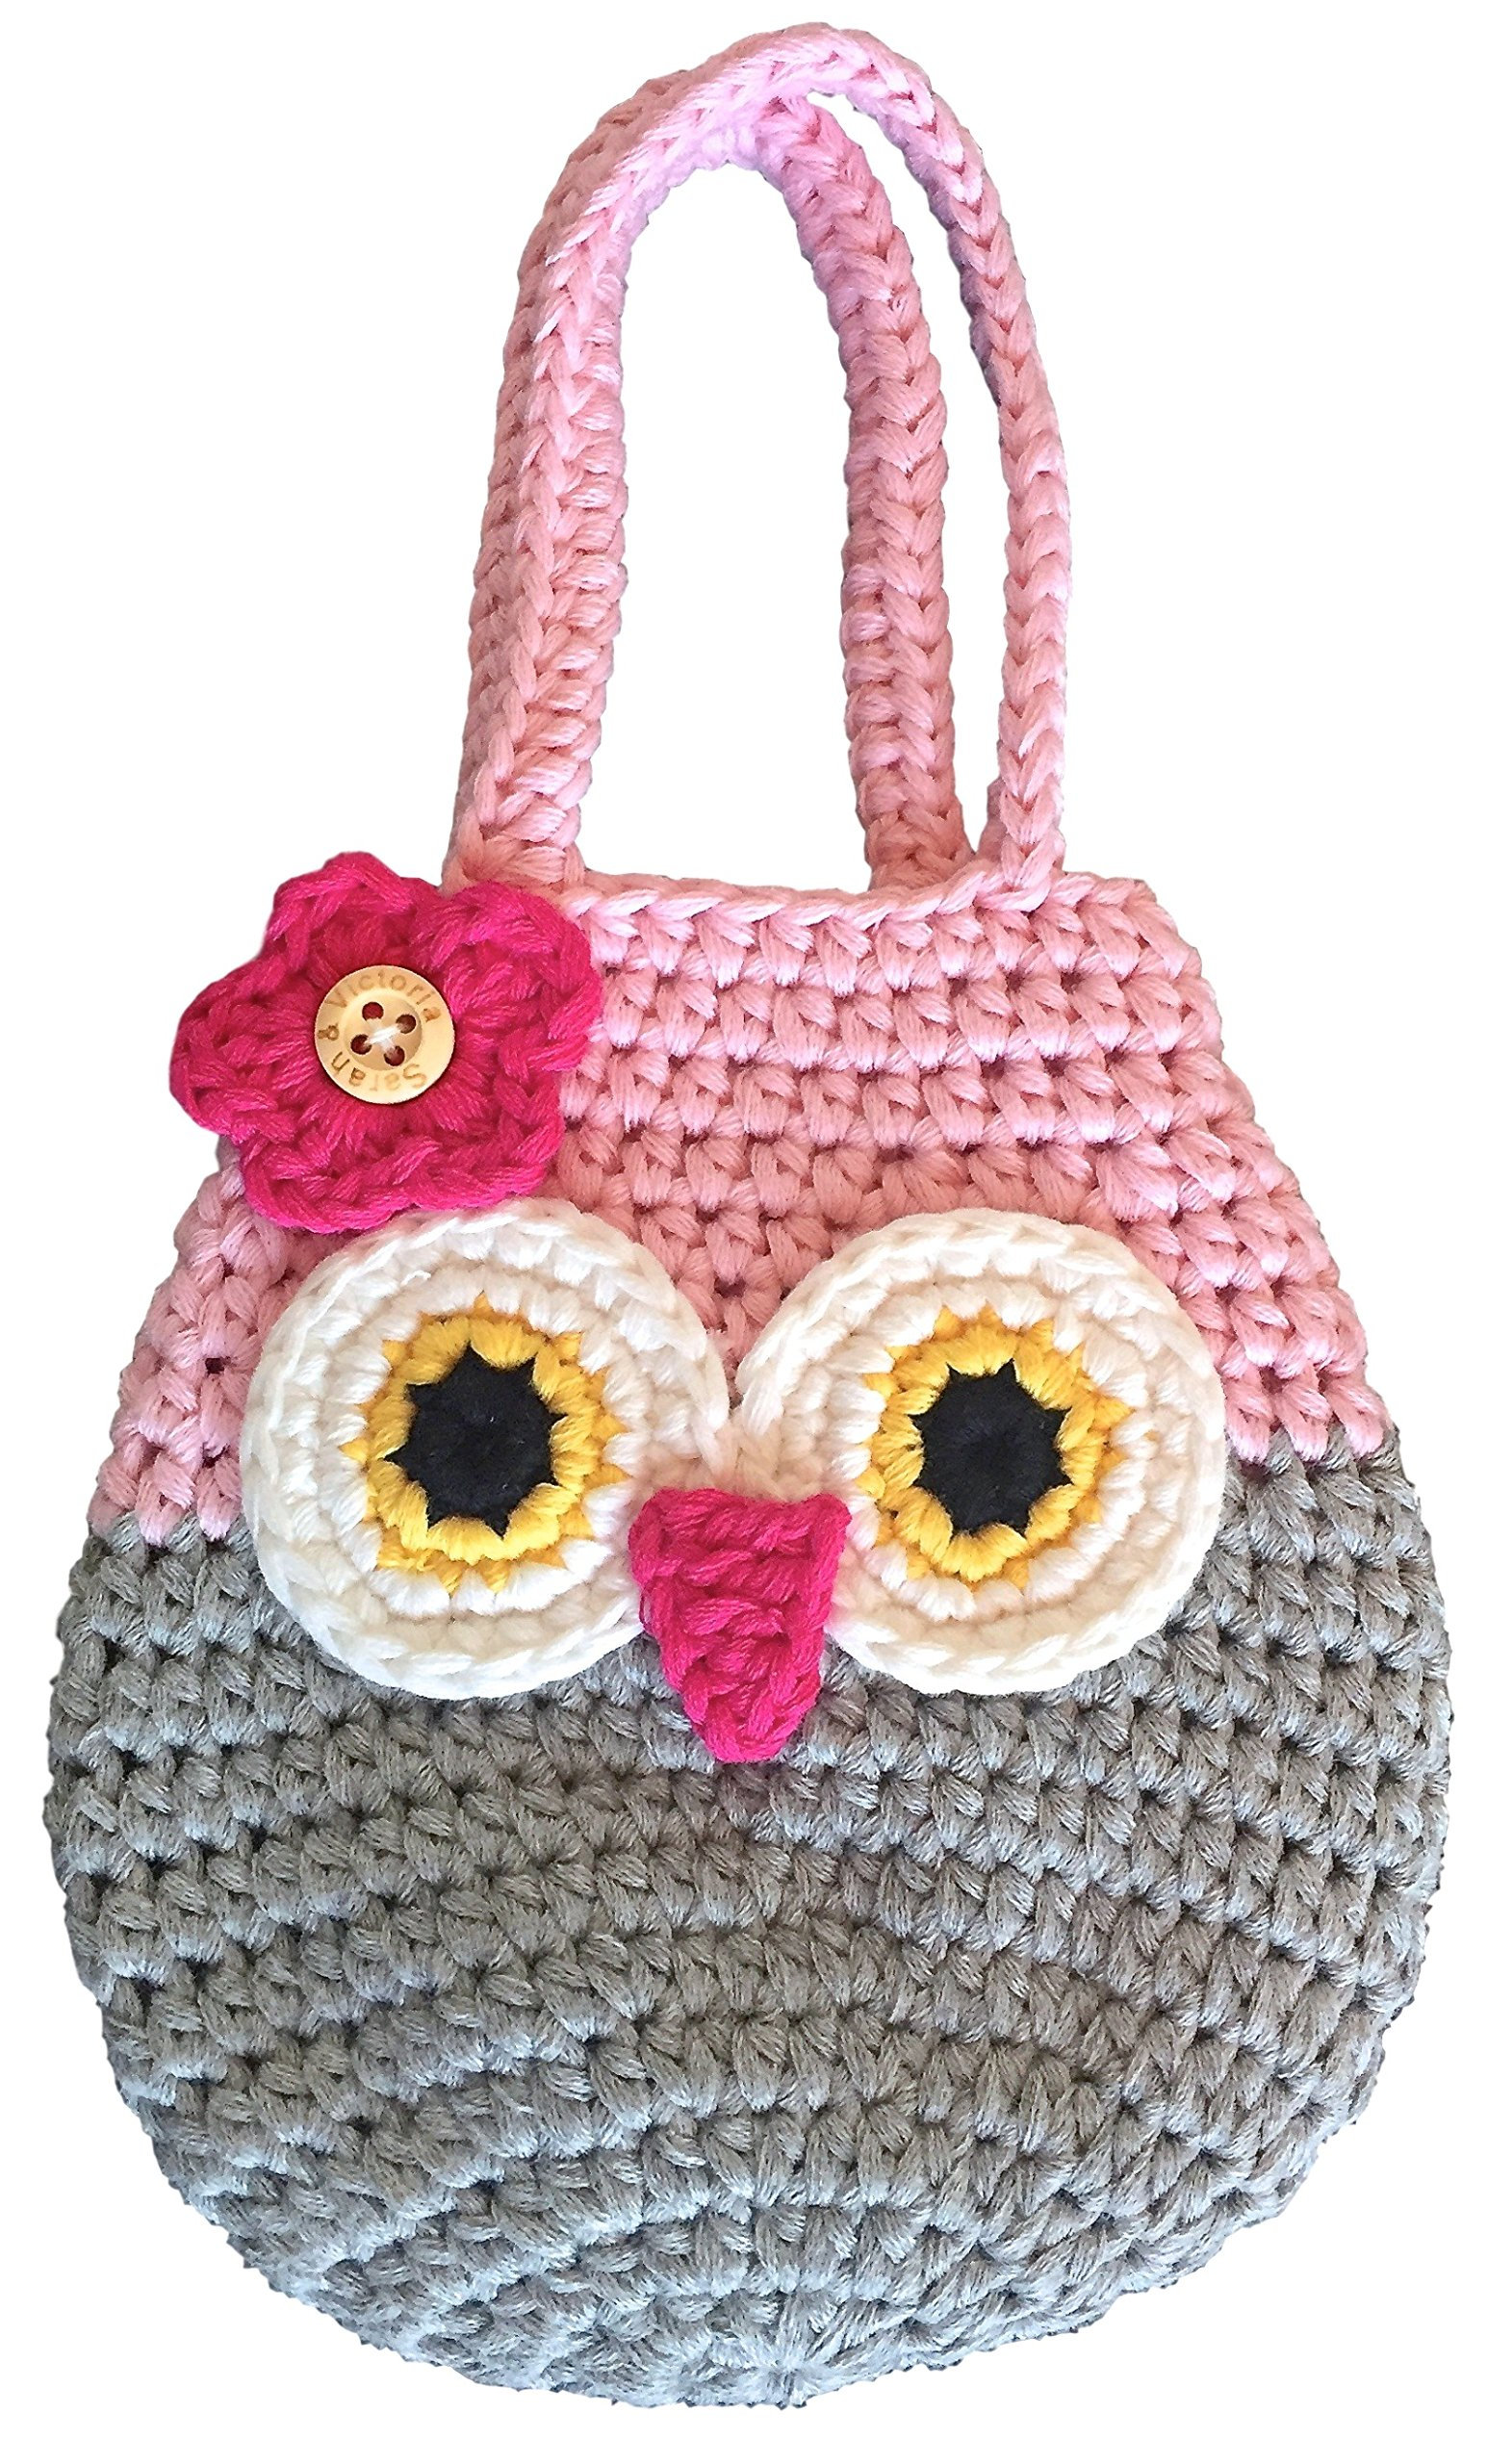 Happy Owl Mini Handbag, Best Gift For Little & Young Girls, Cute Pink & Grey Purse, Handmade Crochet, Soft Yarn, Wristlet For All Ages, Dress-Up & Play Or Use As Cell Phone Case Holder & Pouch